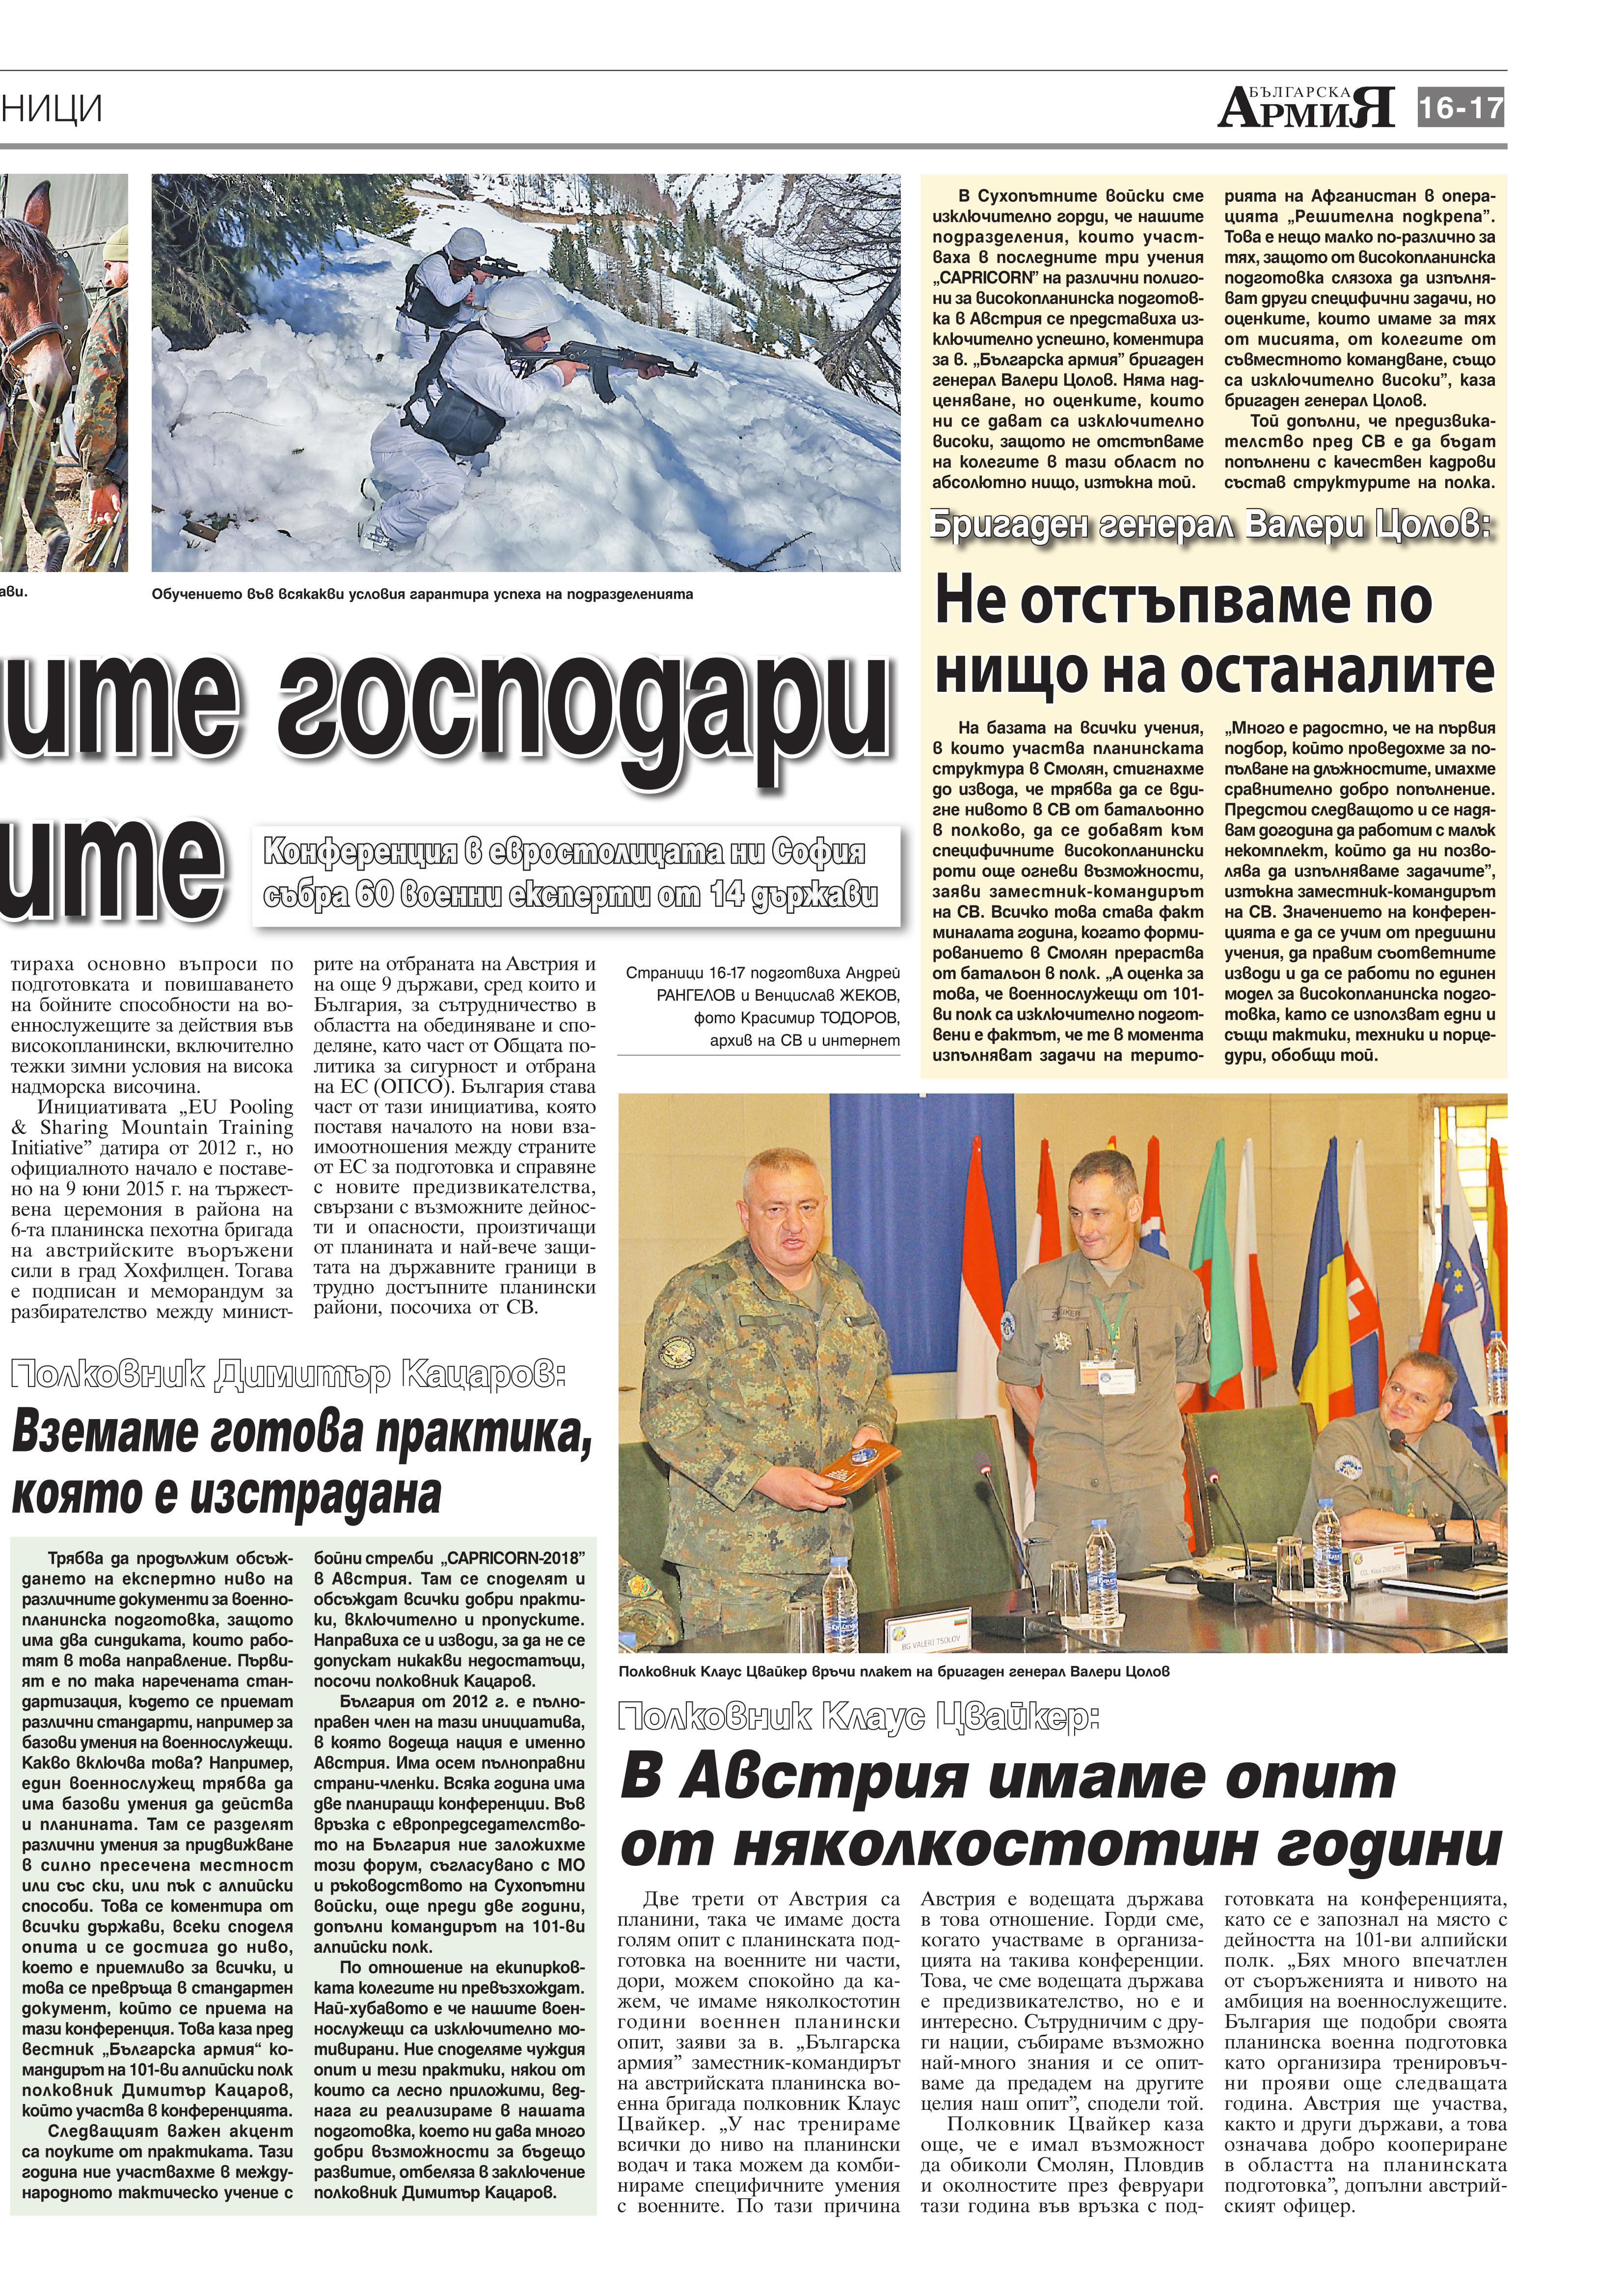 https://armymedia.bg/wp-content/uploads/2015/06/17.page1_-51.jpg